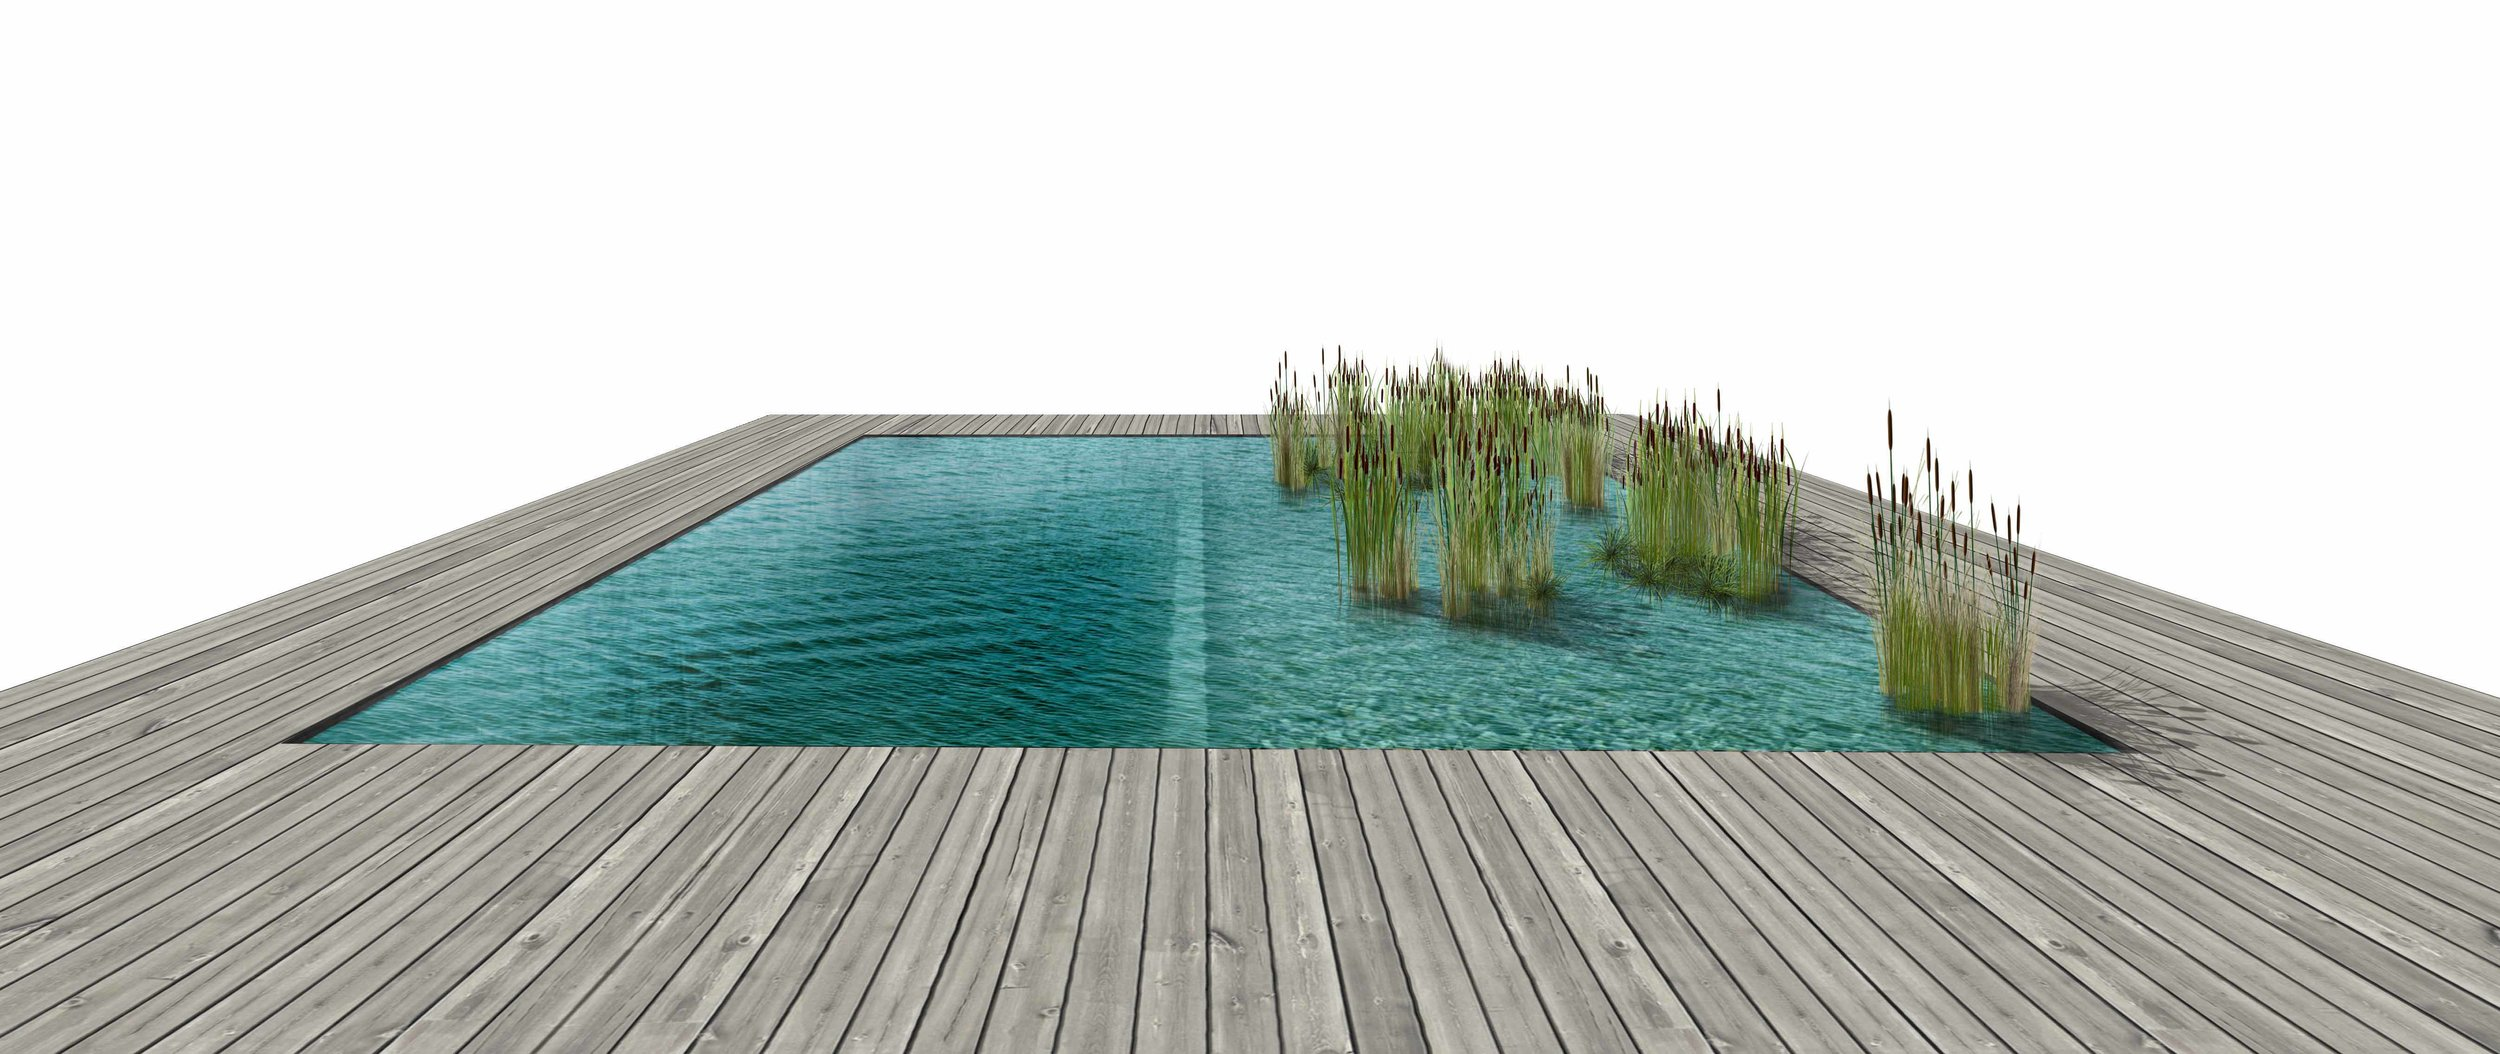 Alex Goad Natural Pool with Deck2.jpg